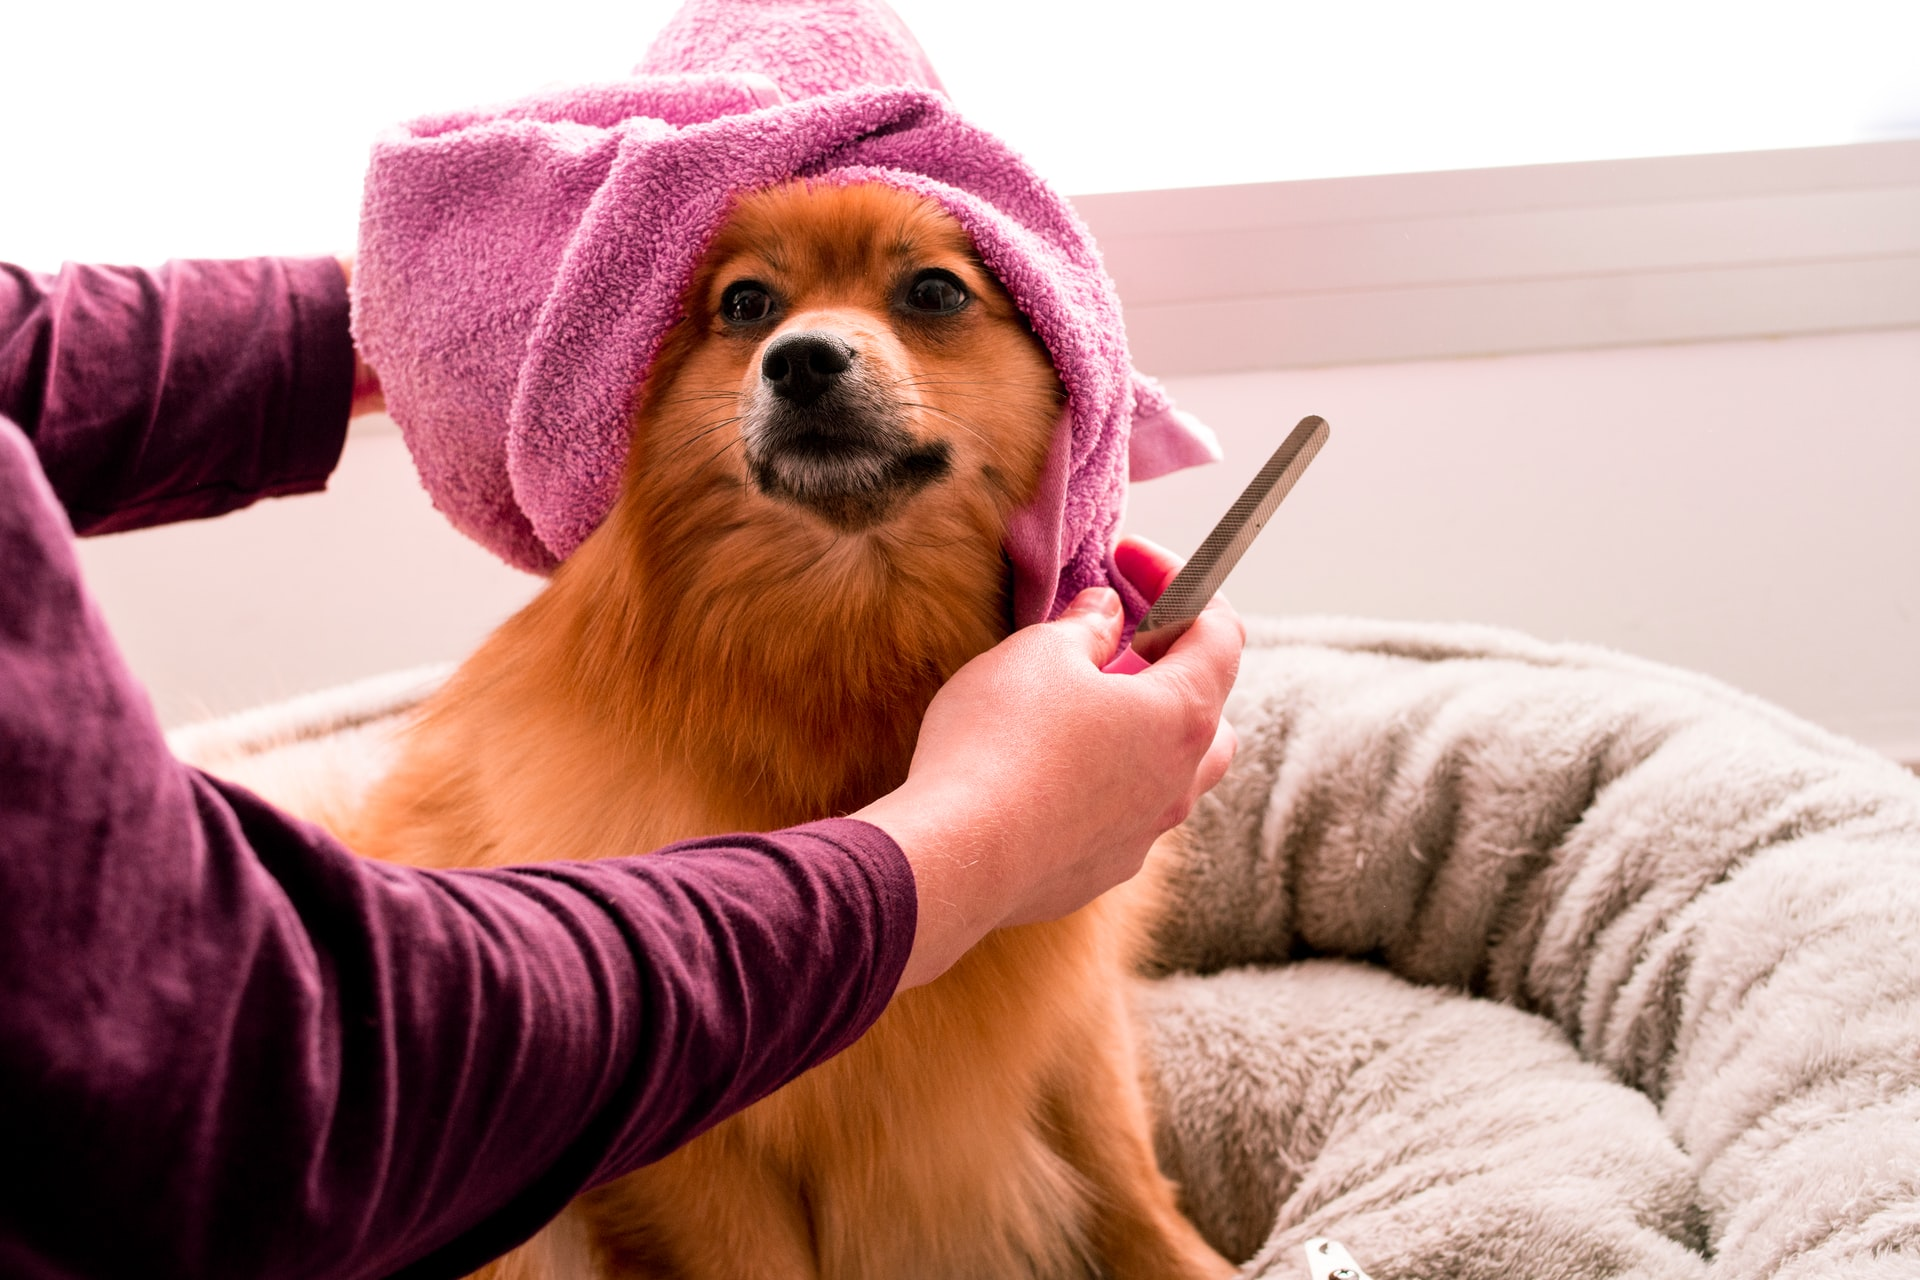 How to Bathe a Dog (Part 1): Preparing Your Dog for a Bath